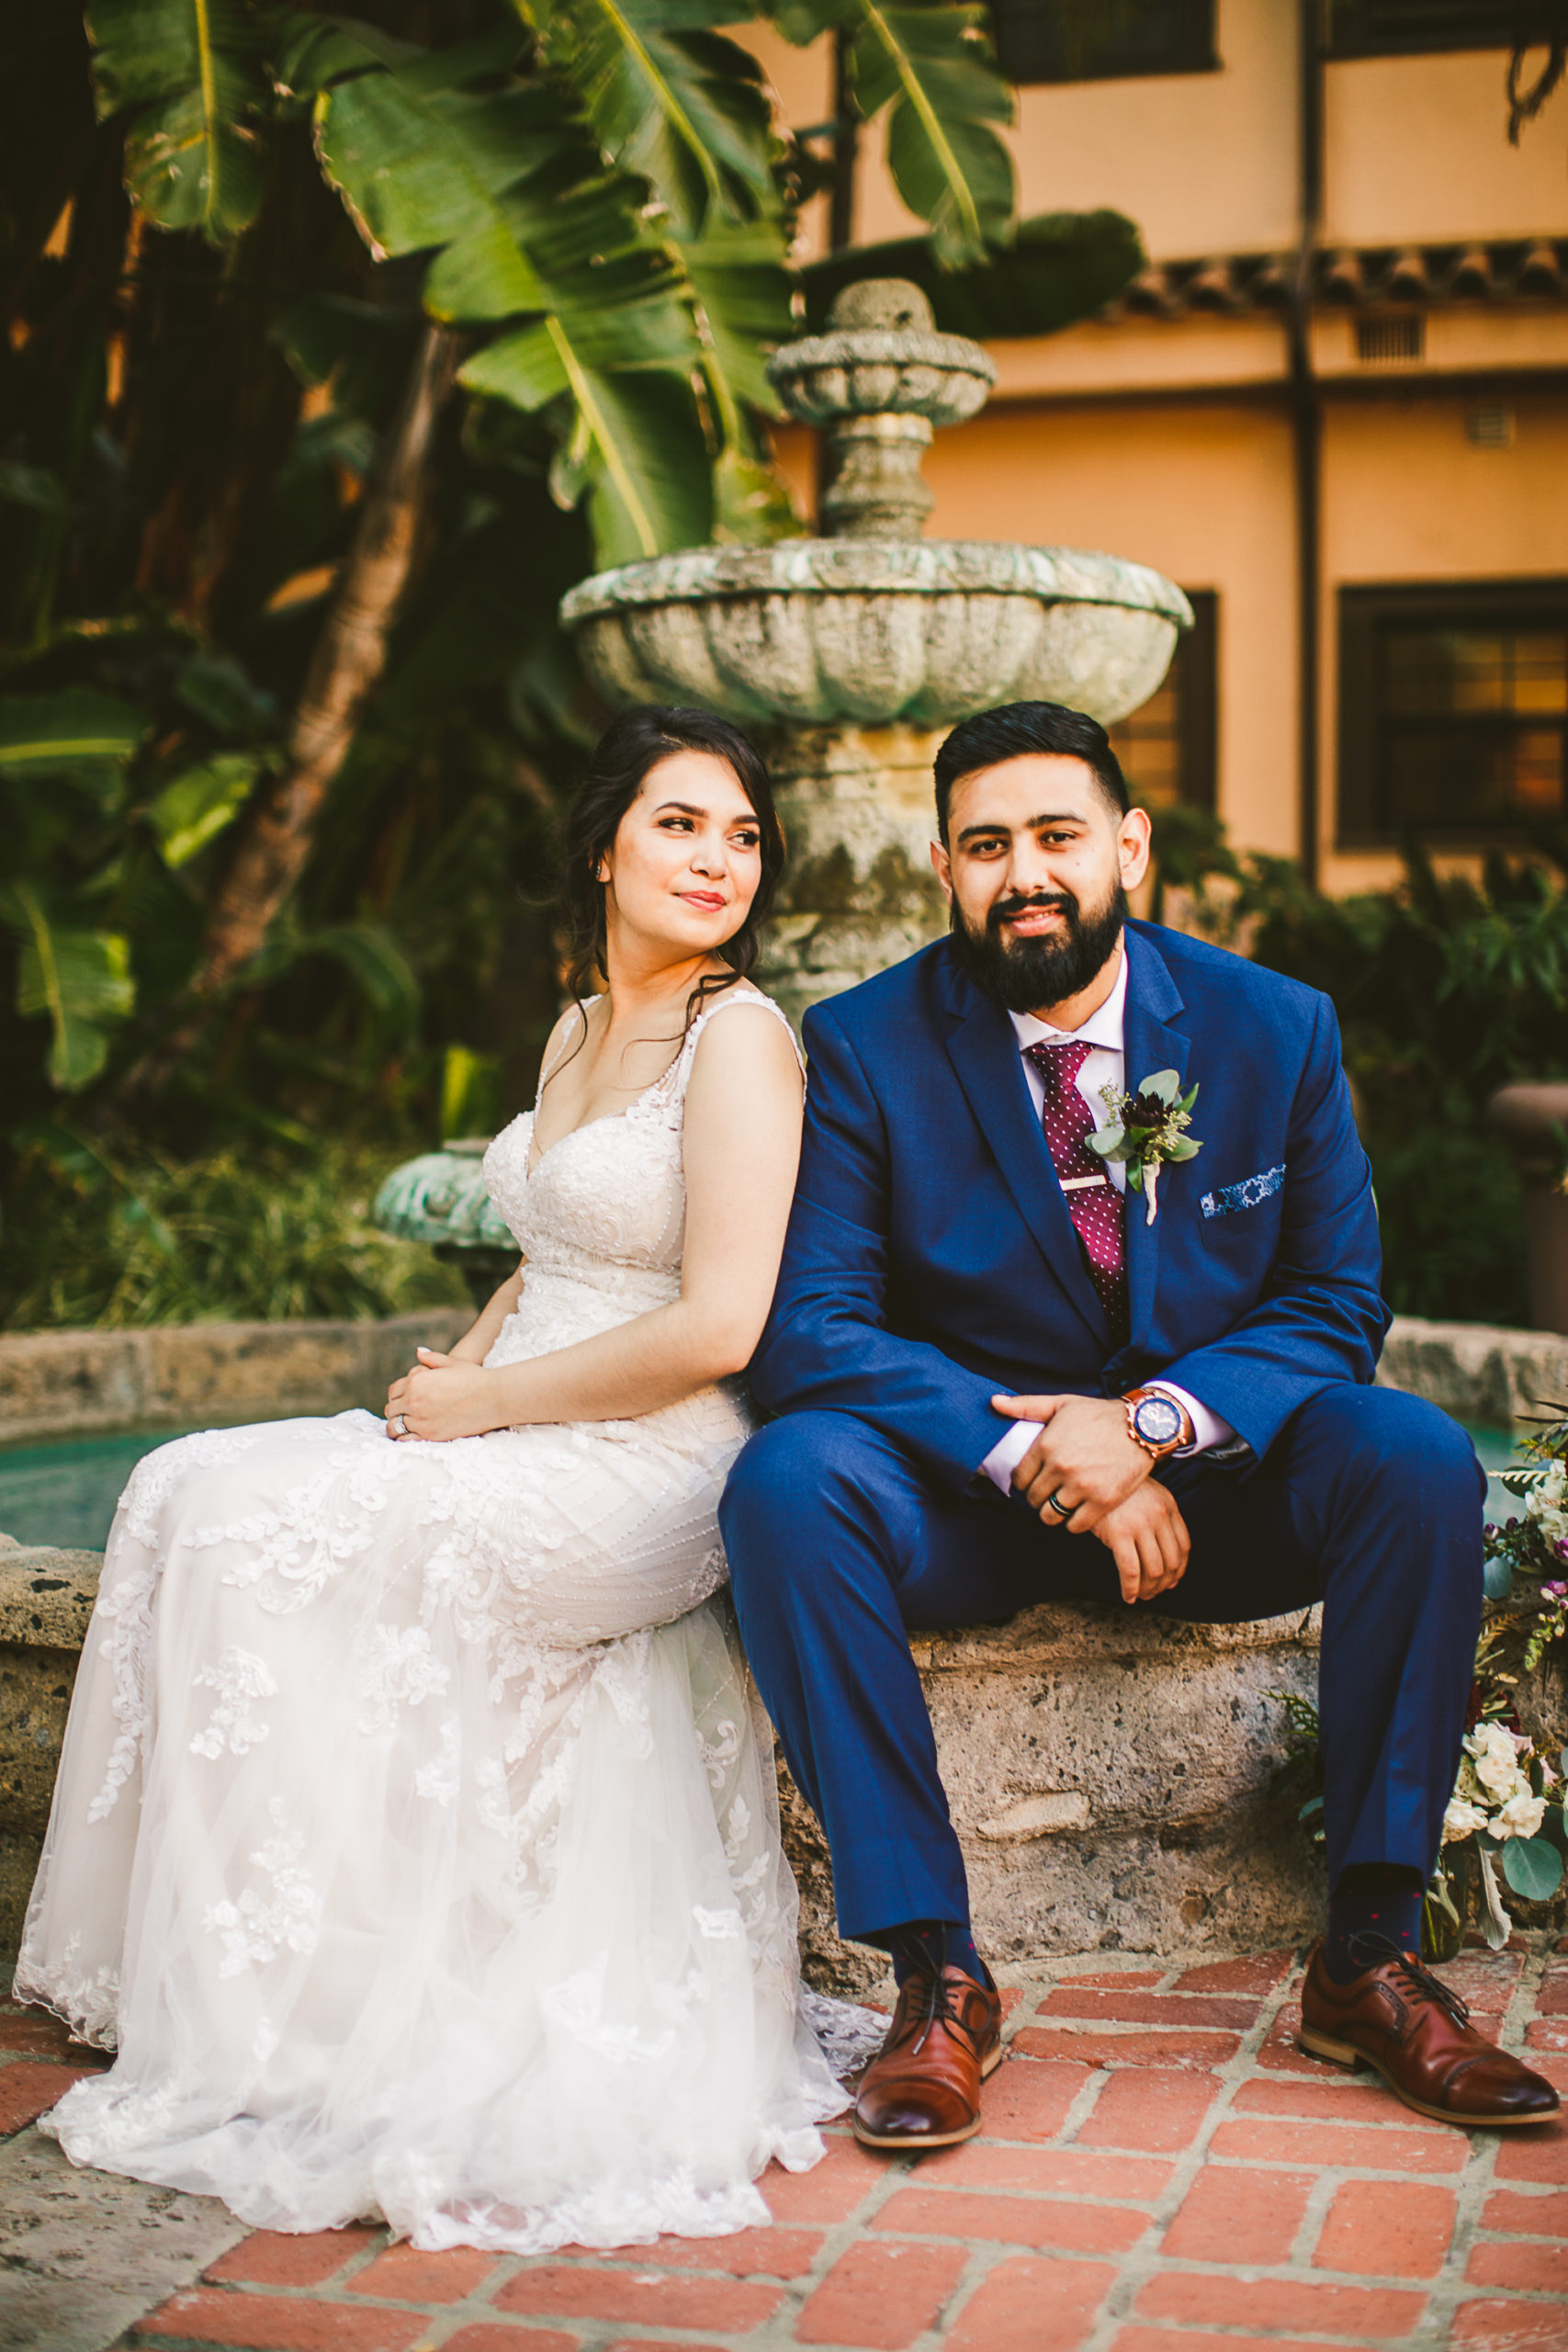 ALEJANDRA & DAVID